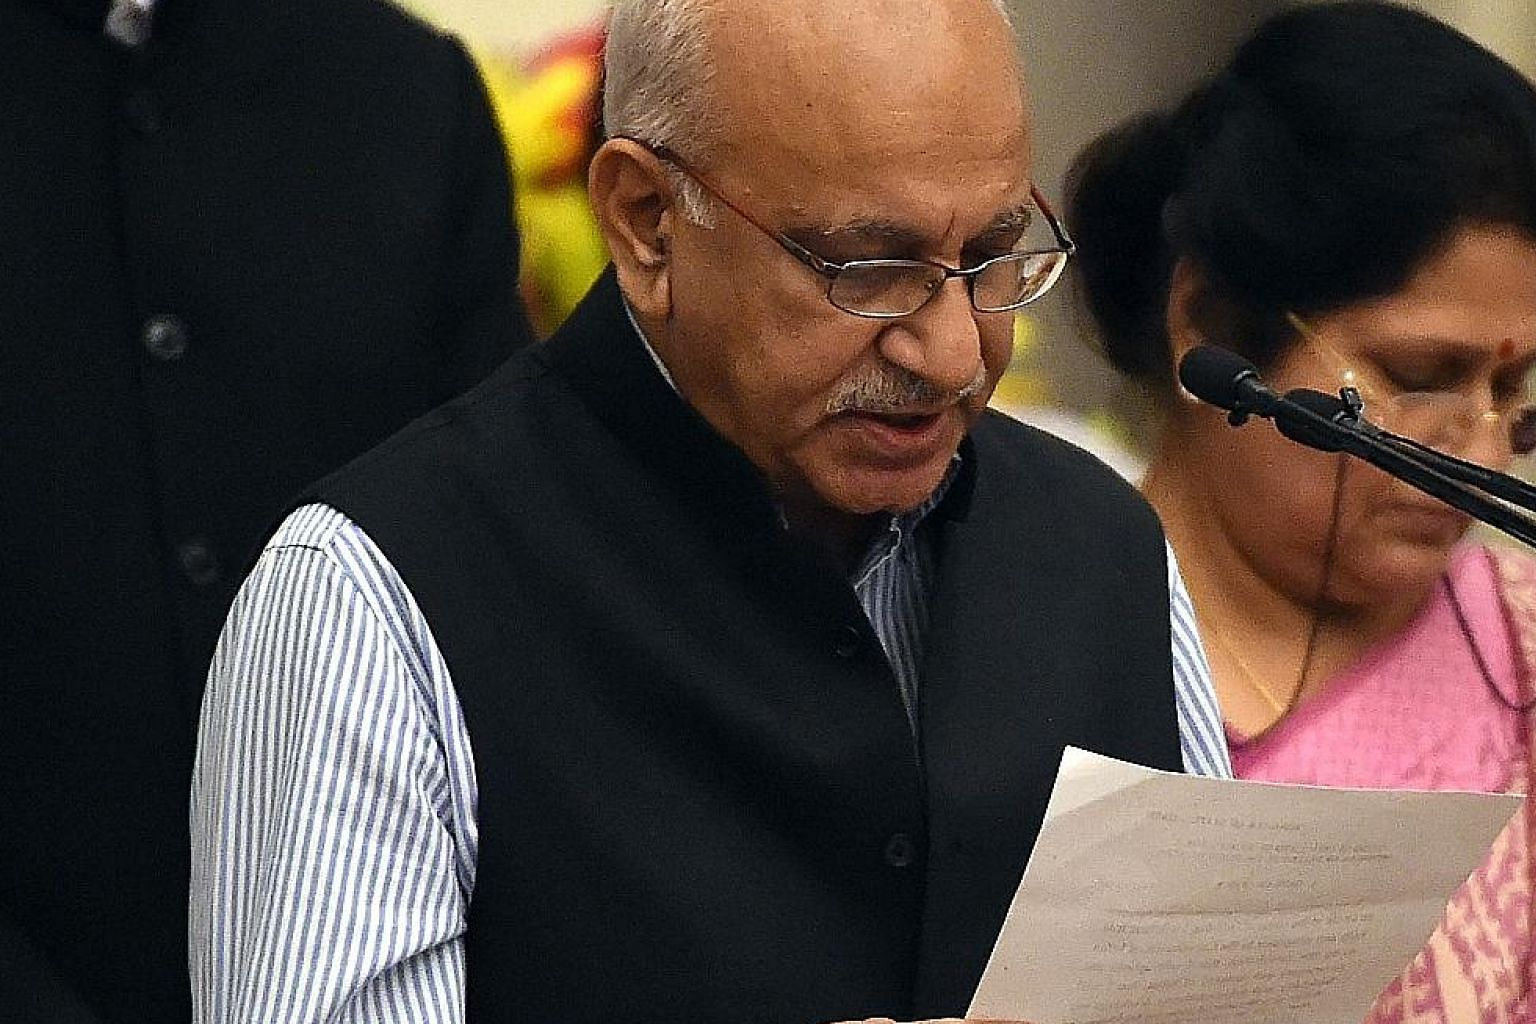 More than a dozen women have accused junior foreign minister M.J. Akbar, a former journalist, of sexual harassment.